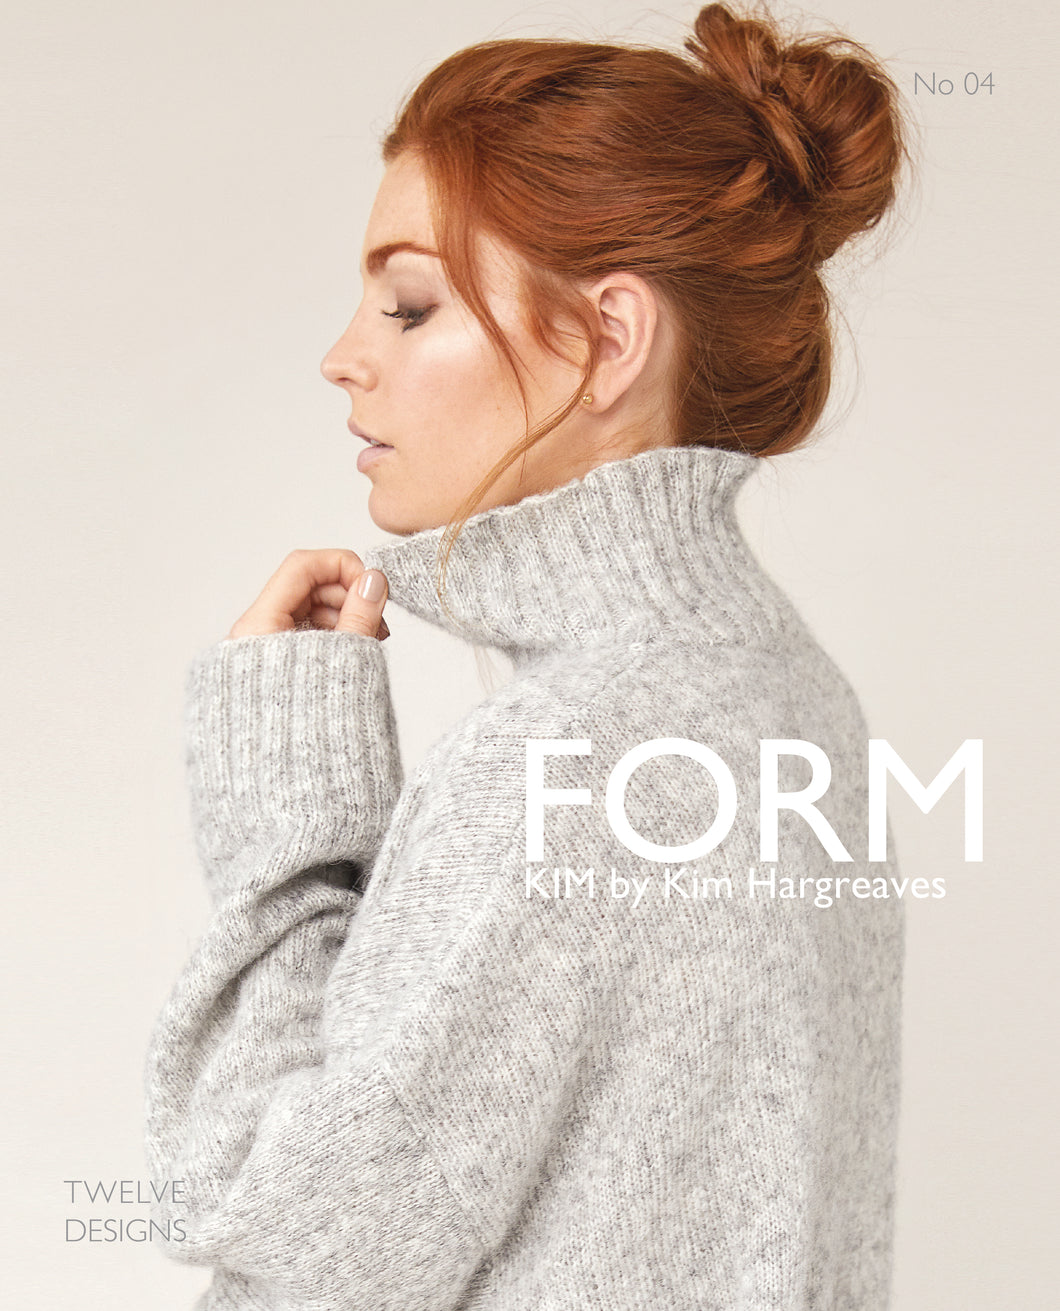 Form - Kim Hargreaves